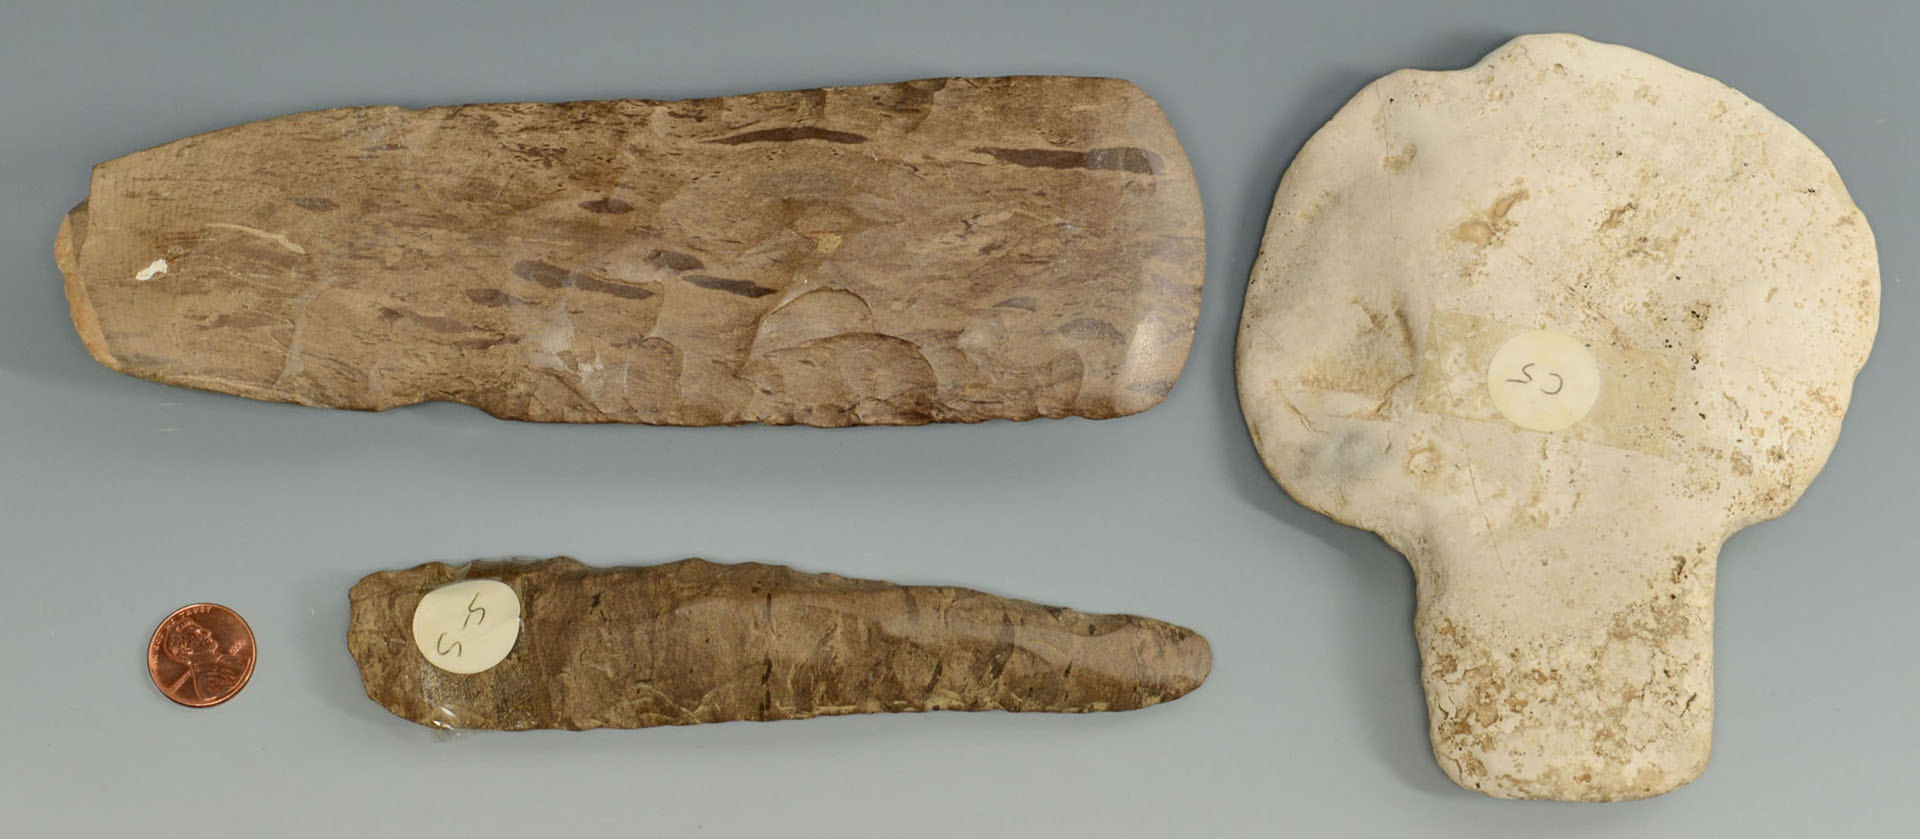 Lot 636: 2 Dover flint celts and 1 spatulate celt, TN